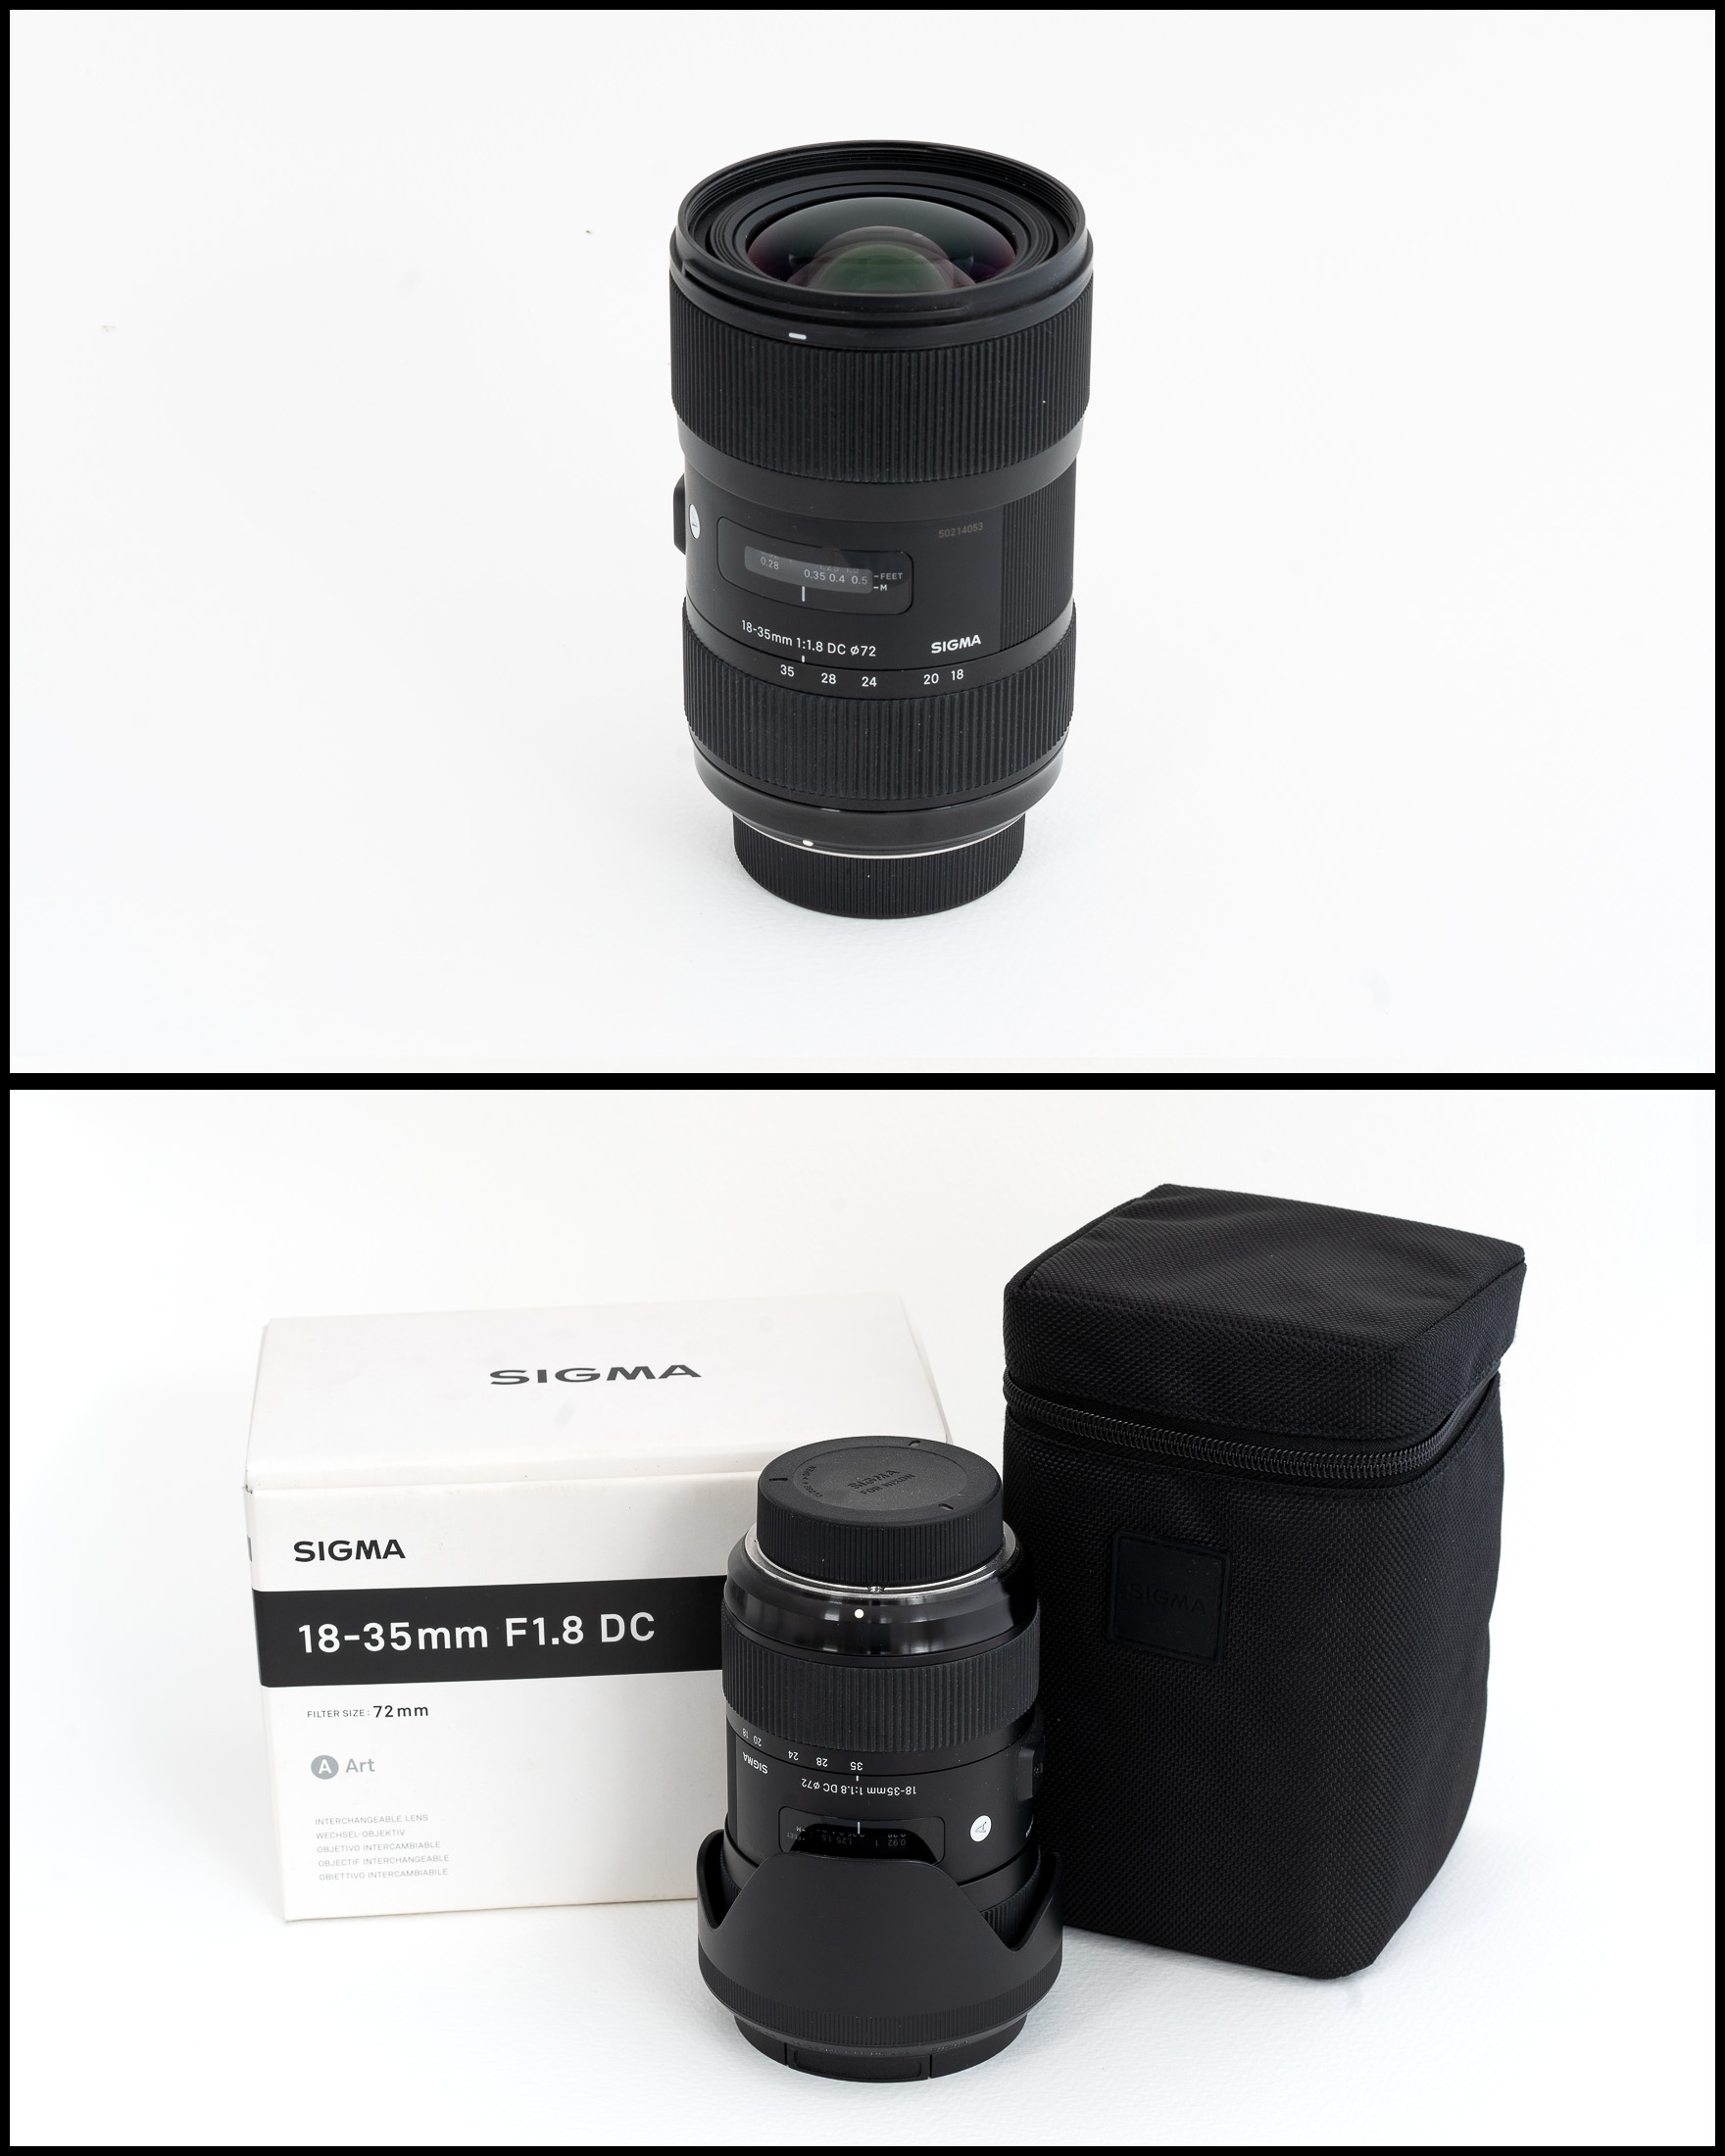 Sigma 18-35 f1.8 DC ART (Nikon fit)    £450   In excellent condition comes with lens hood, front and rear caps, manual, pouch and original box.